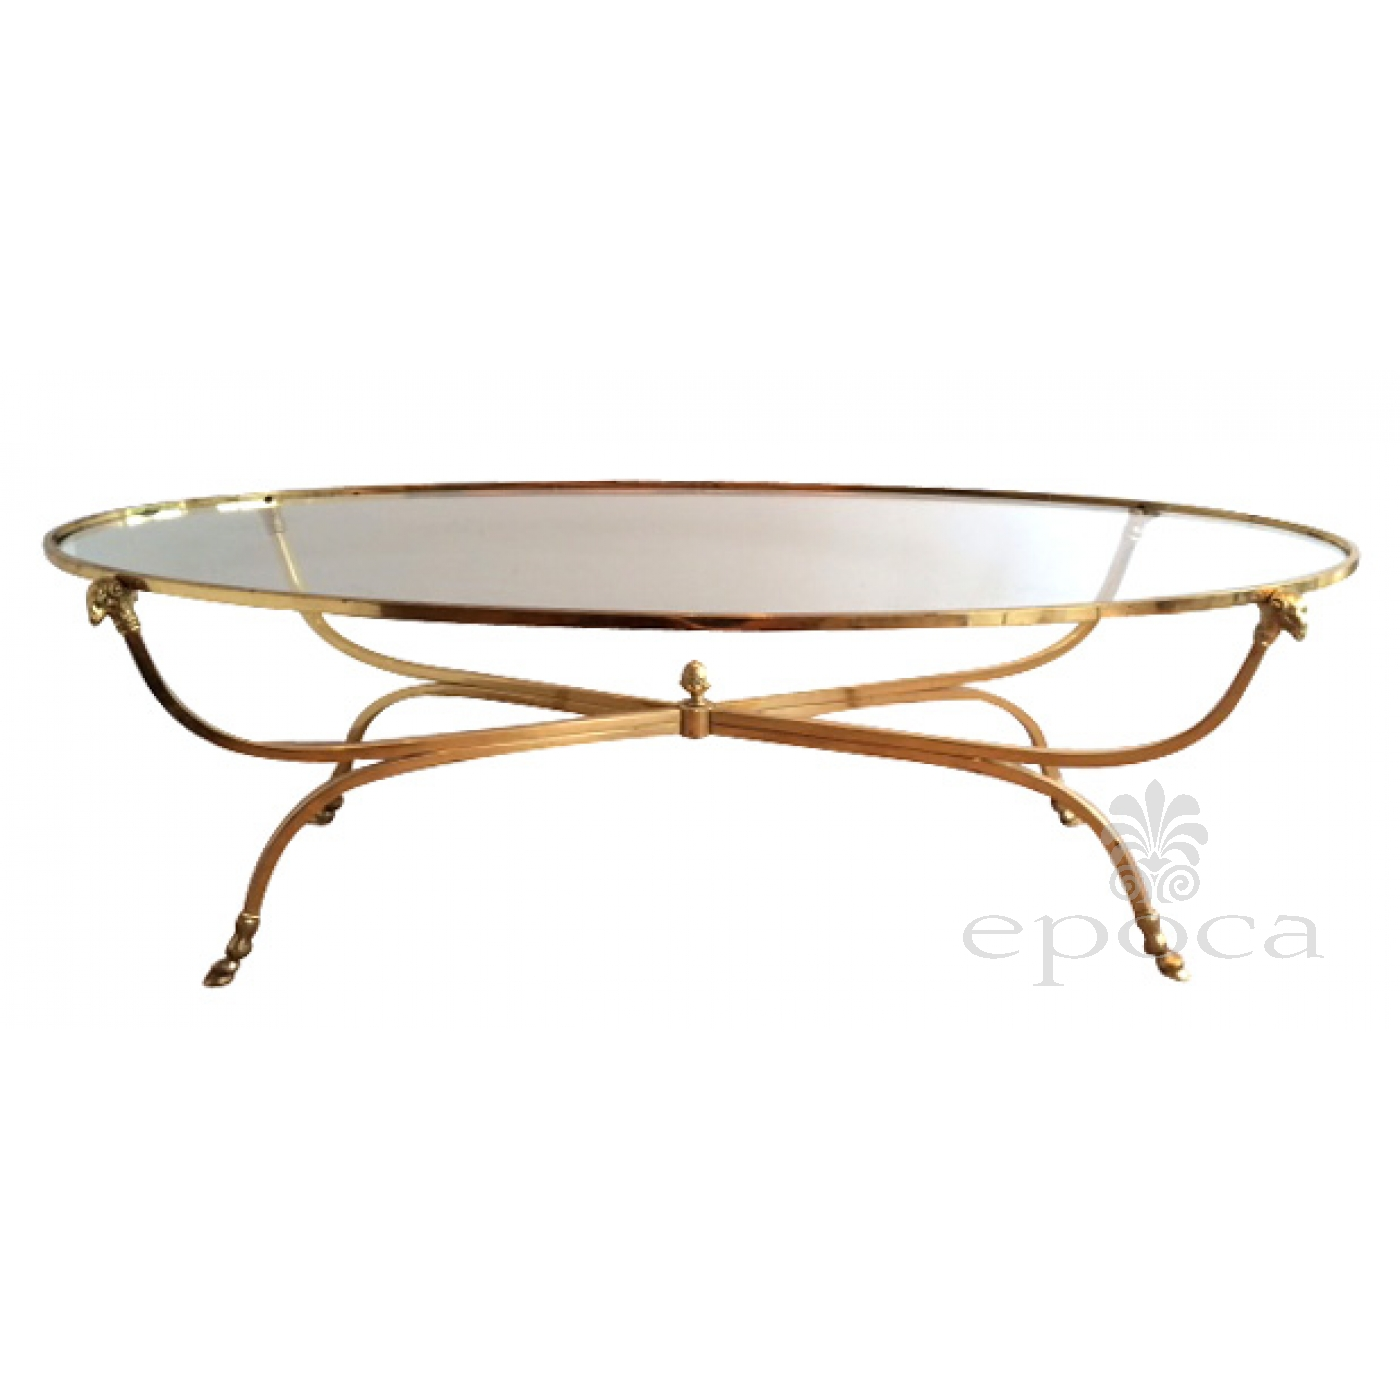 a stylish and good quality french mid century modern brass oval